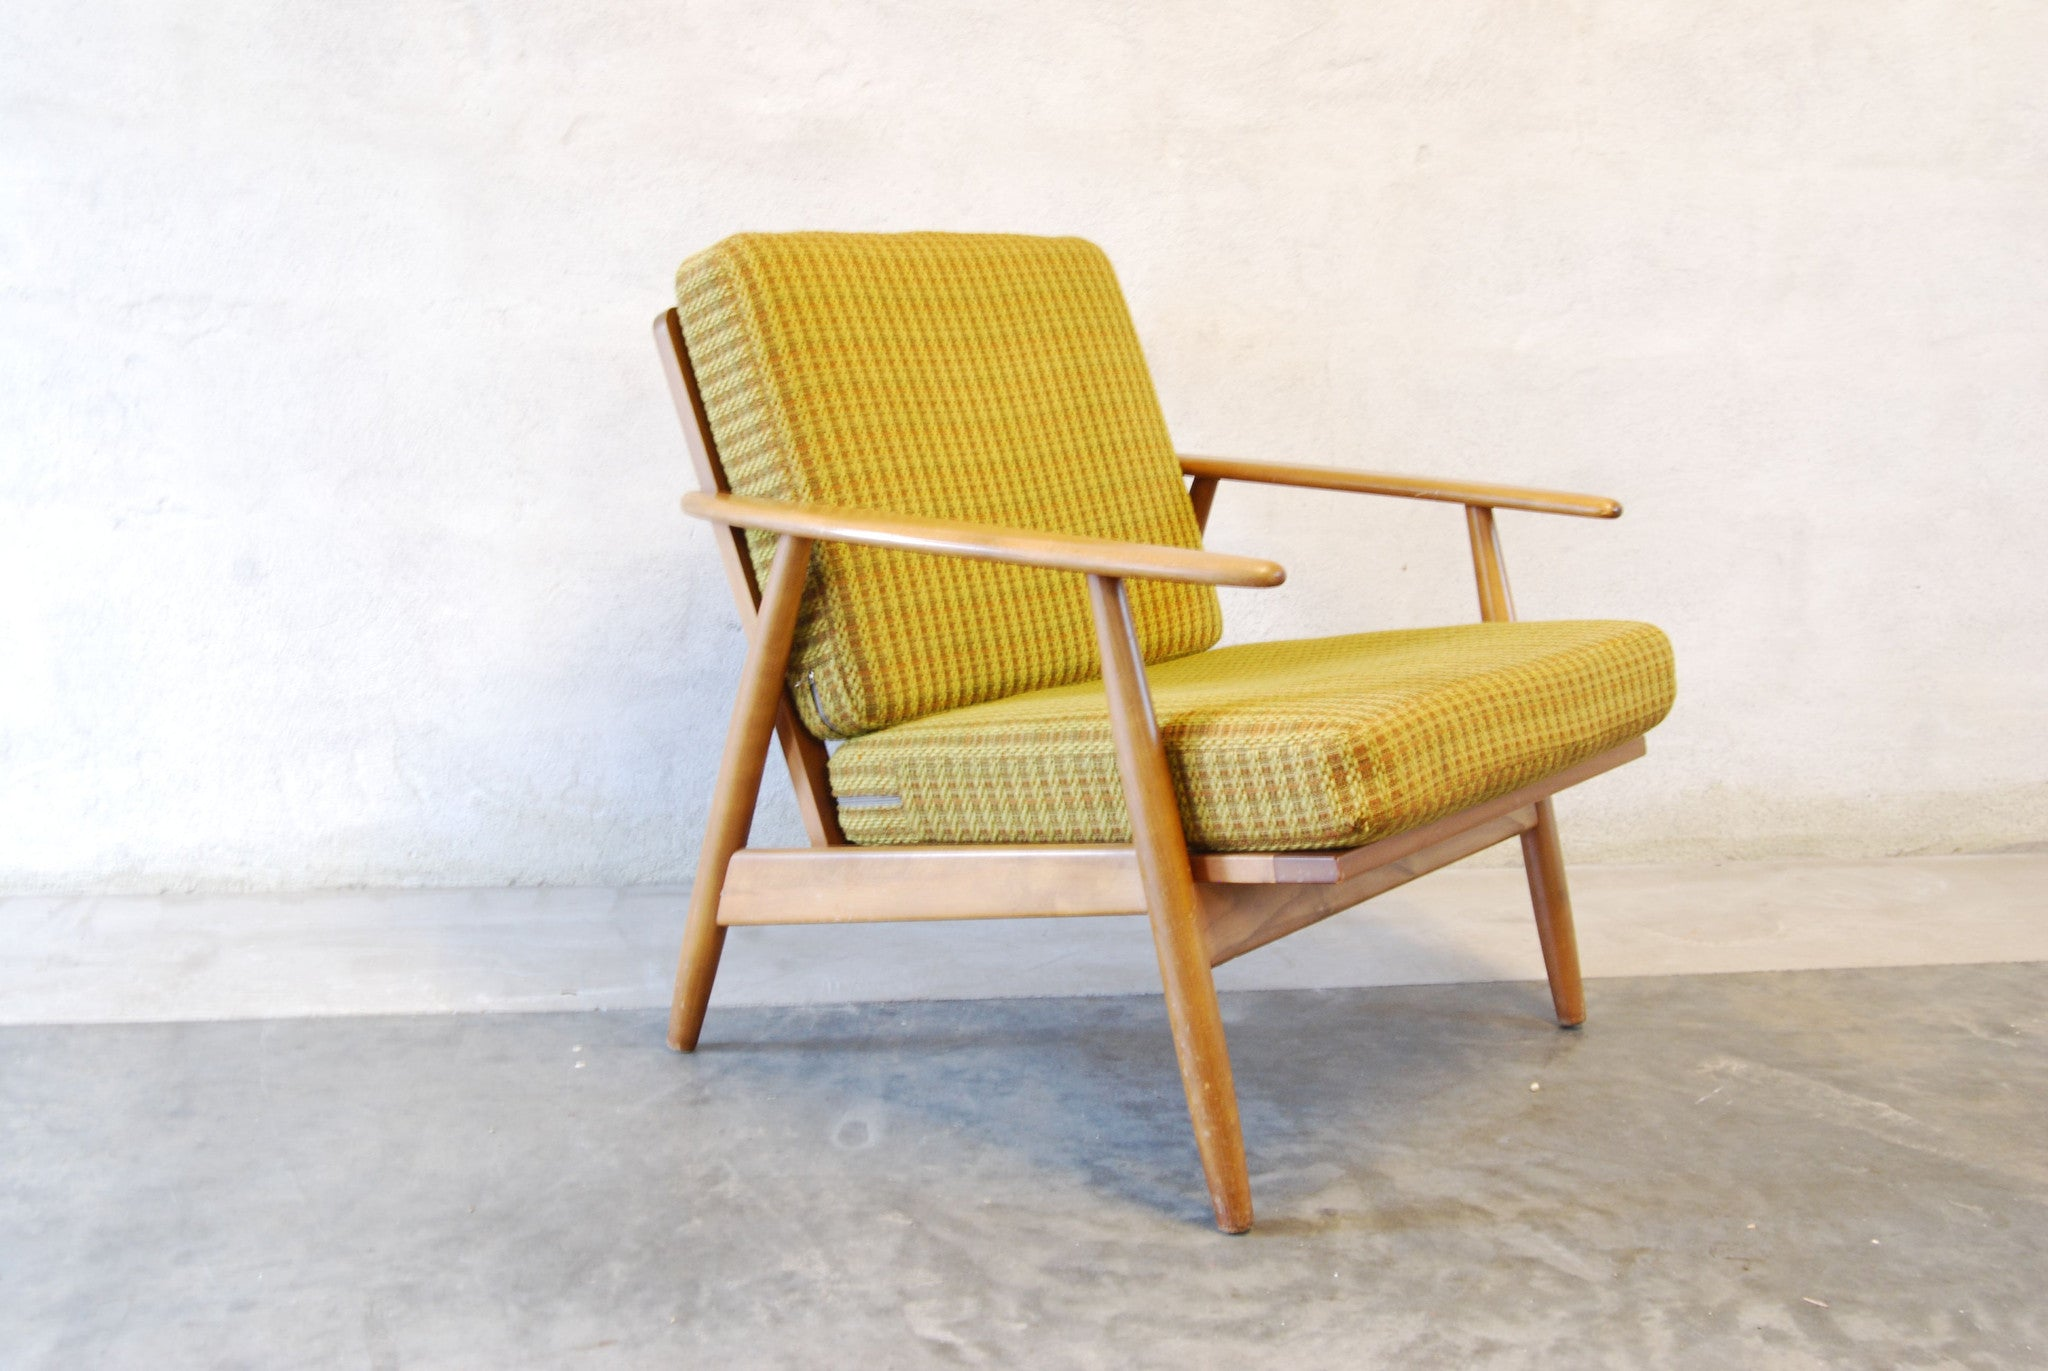 Chase & Sorensen Lounge chair in beech